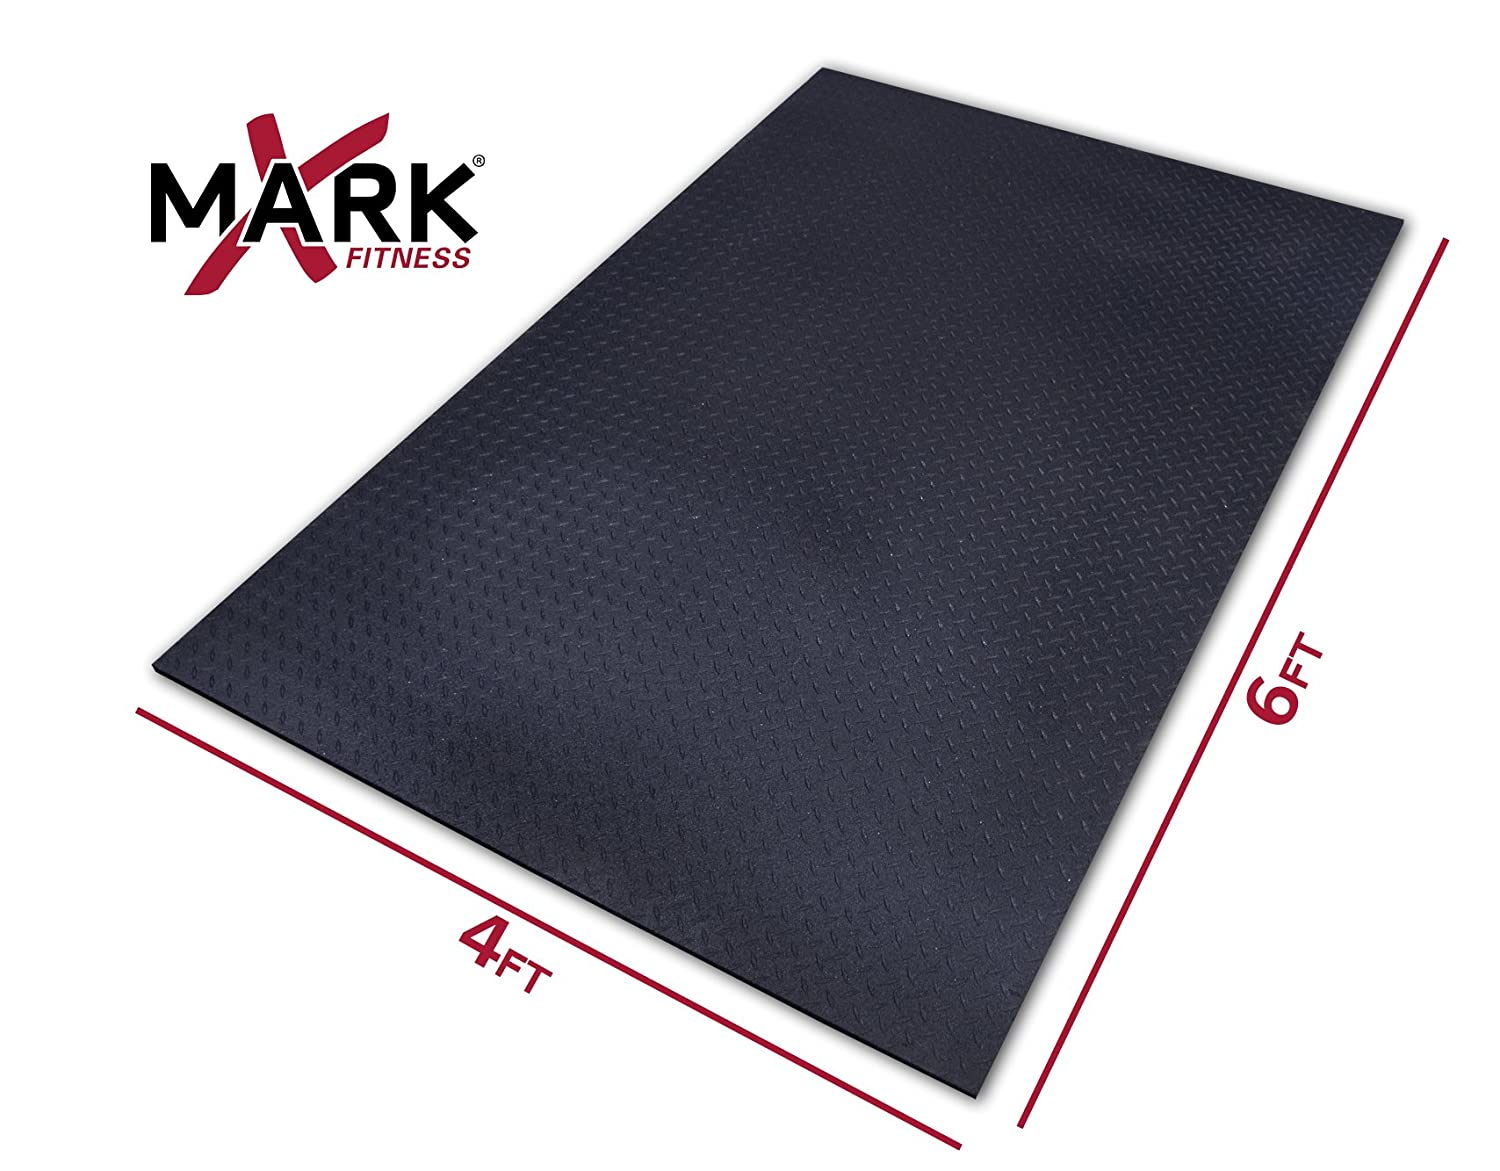 Rubber floor mats workout - Amazon Com Xmark Fitness Xmat Ultra Thick Equipment Mat Exercise Protective Flooring Sports Outdoors